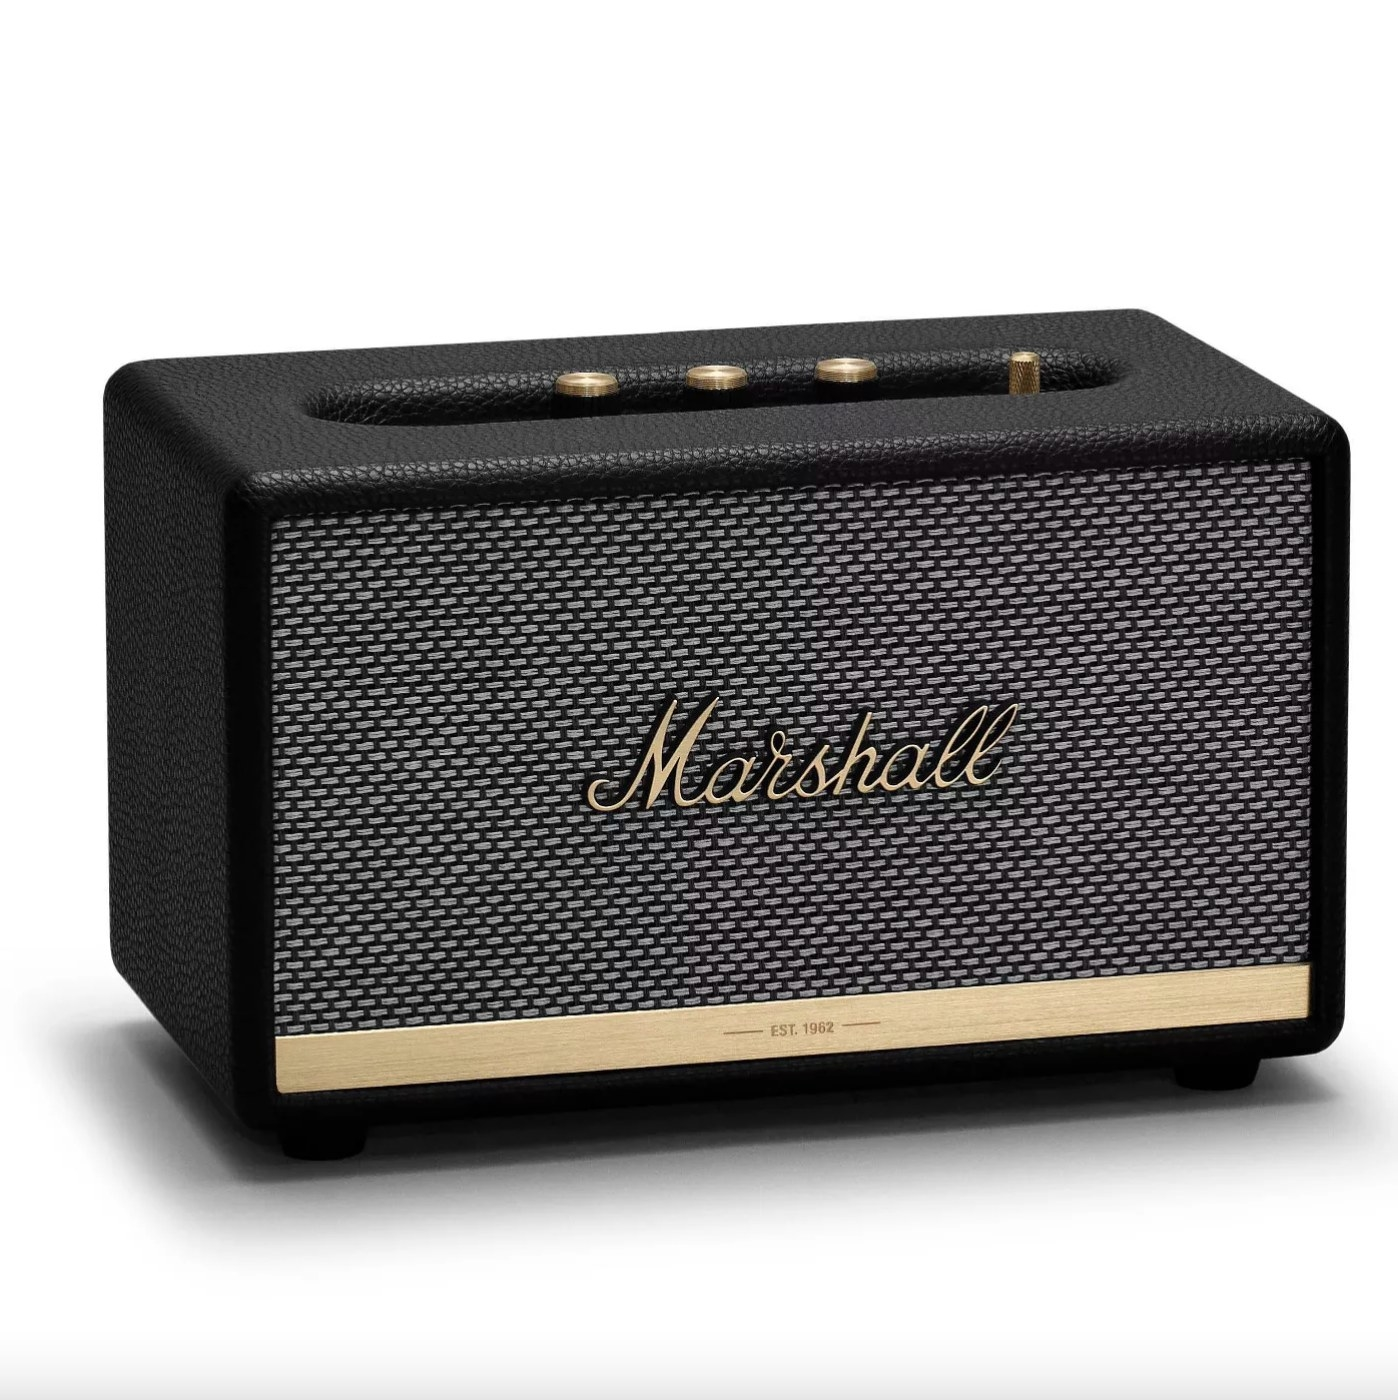 The Marshall acton II bluetooth speaker